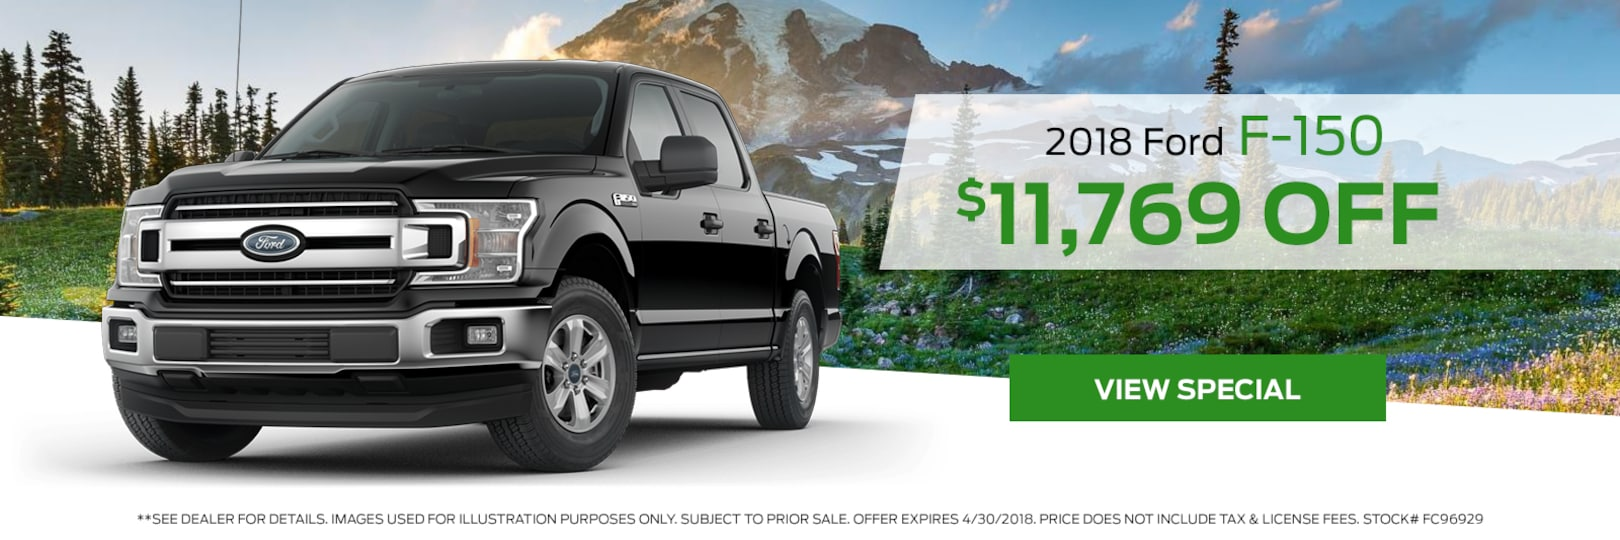 Mullinax Ford Olympia >> Mullinax Ford of Olympia | Buy or Lease a Ford in Olympia, WA